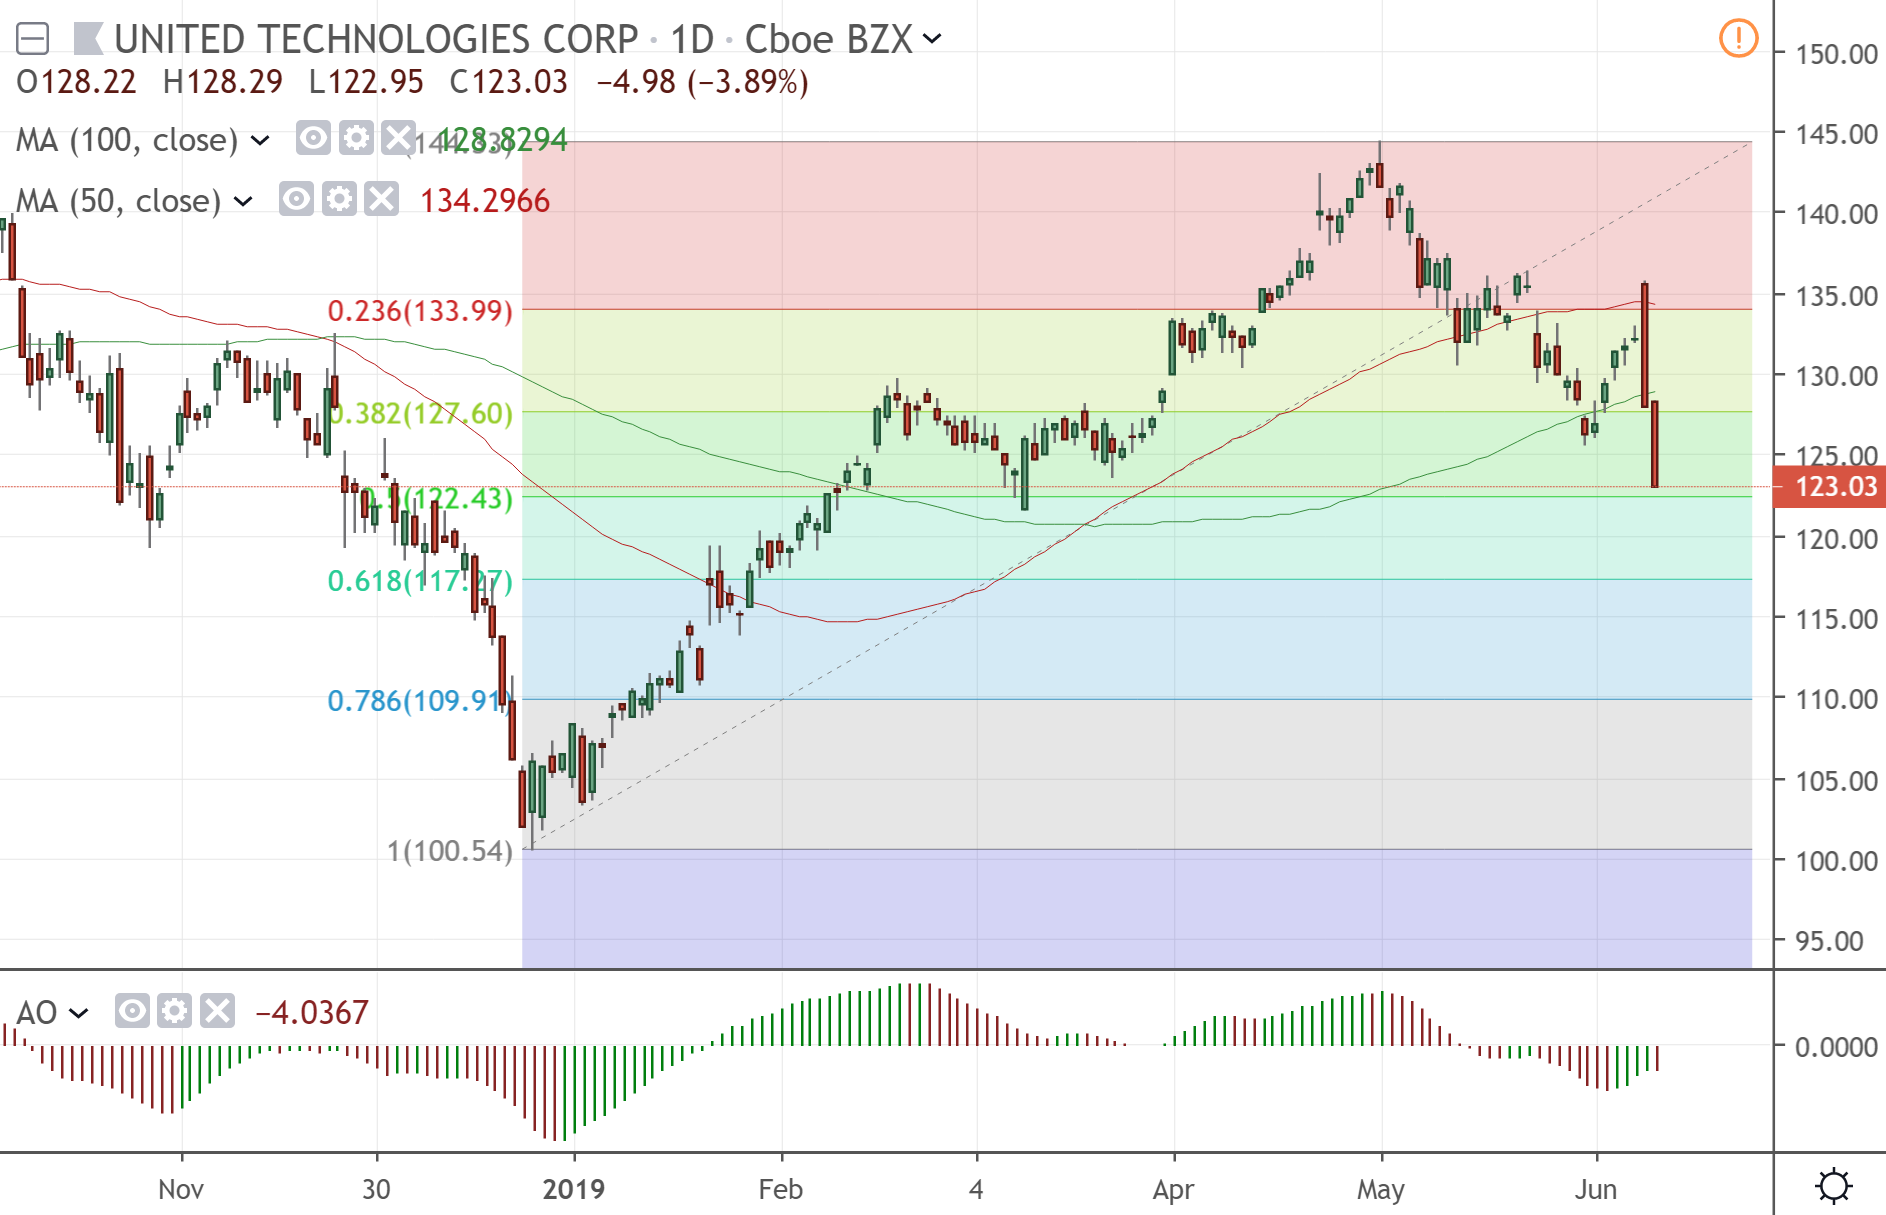 The daily chart of United Technologies Corp.